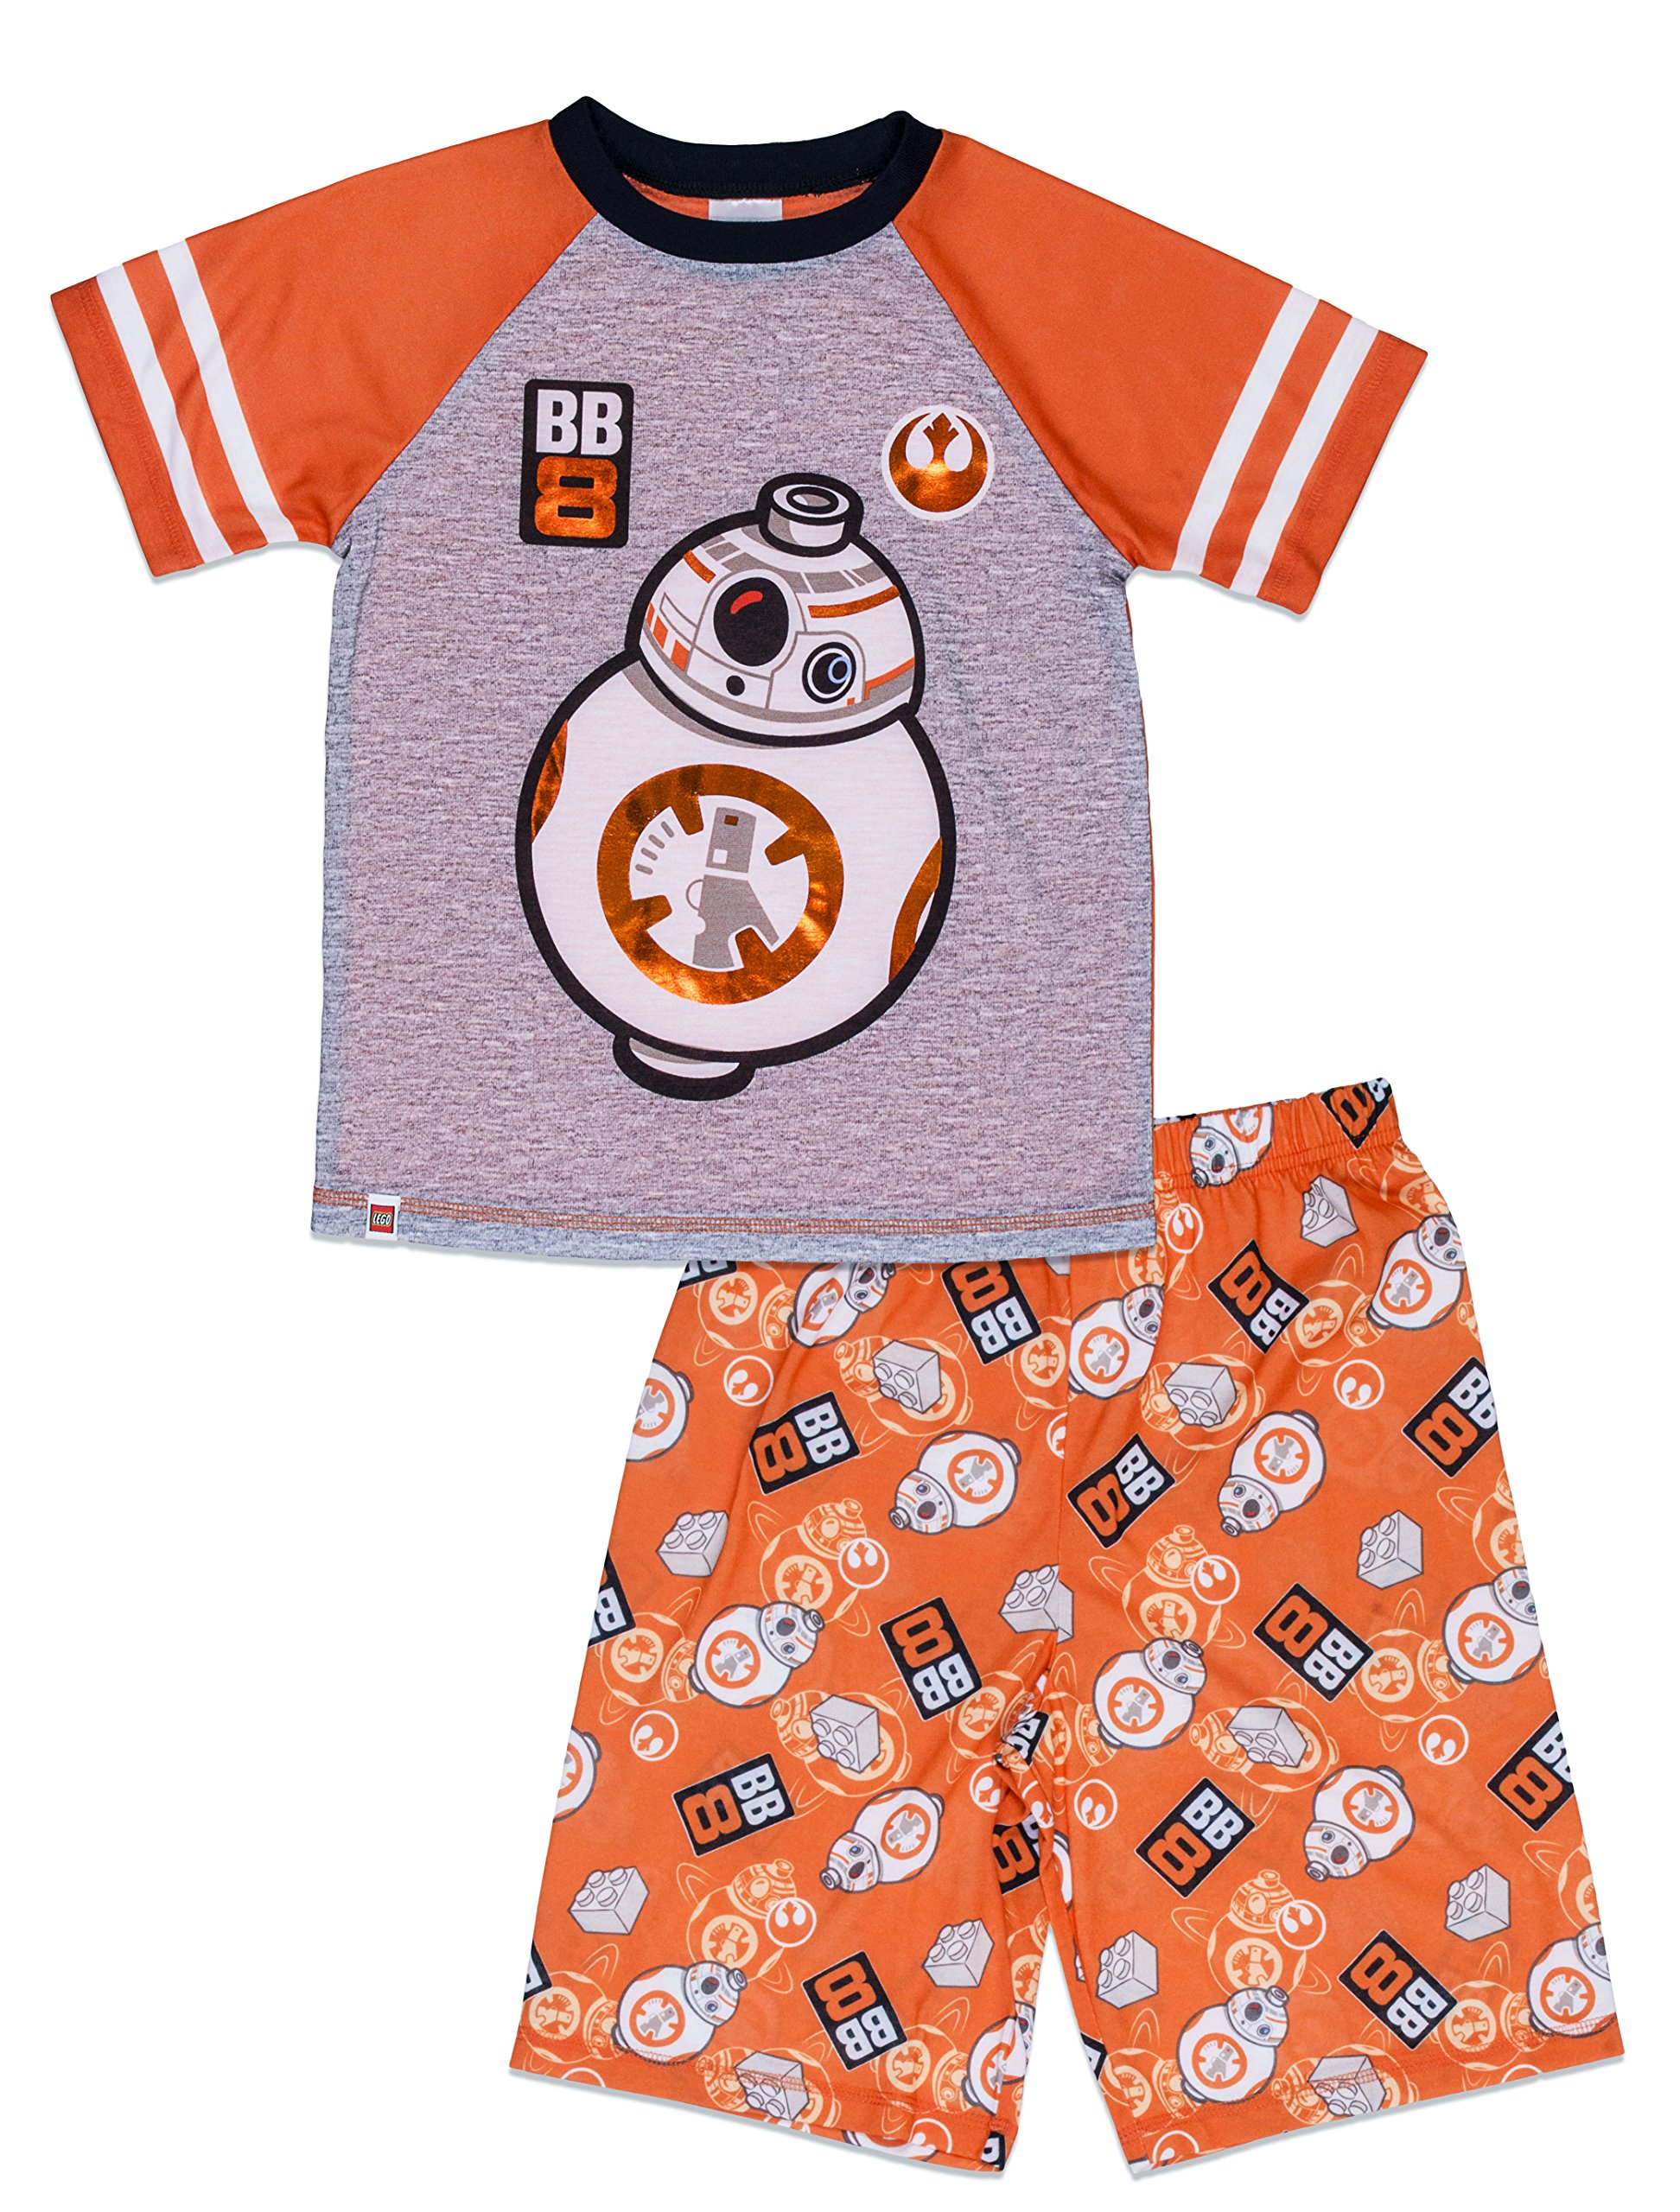 LEGO Star Wars Big Boys' BB-8 2-Piece Pajama Short Set, Orggry, 10/12 by LEGO (Image #2)